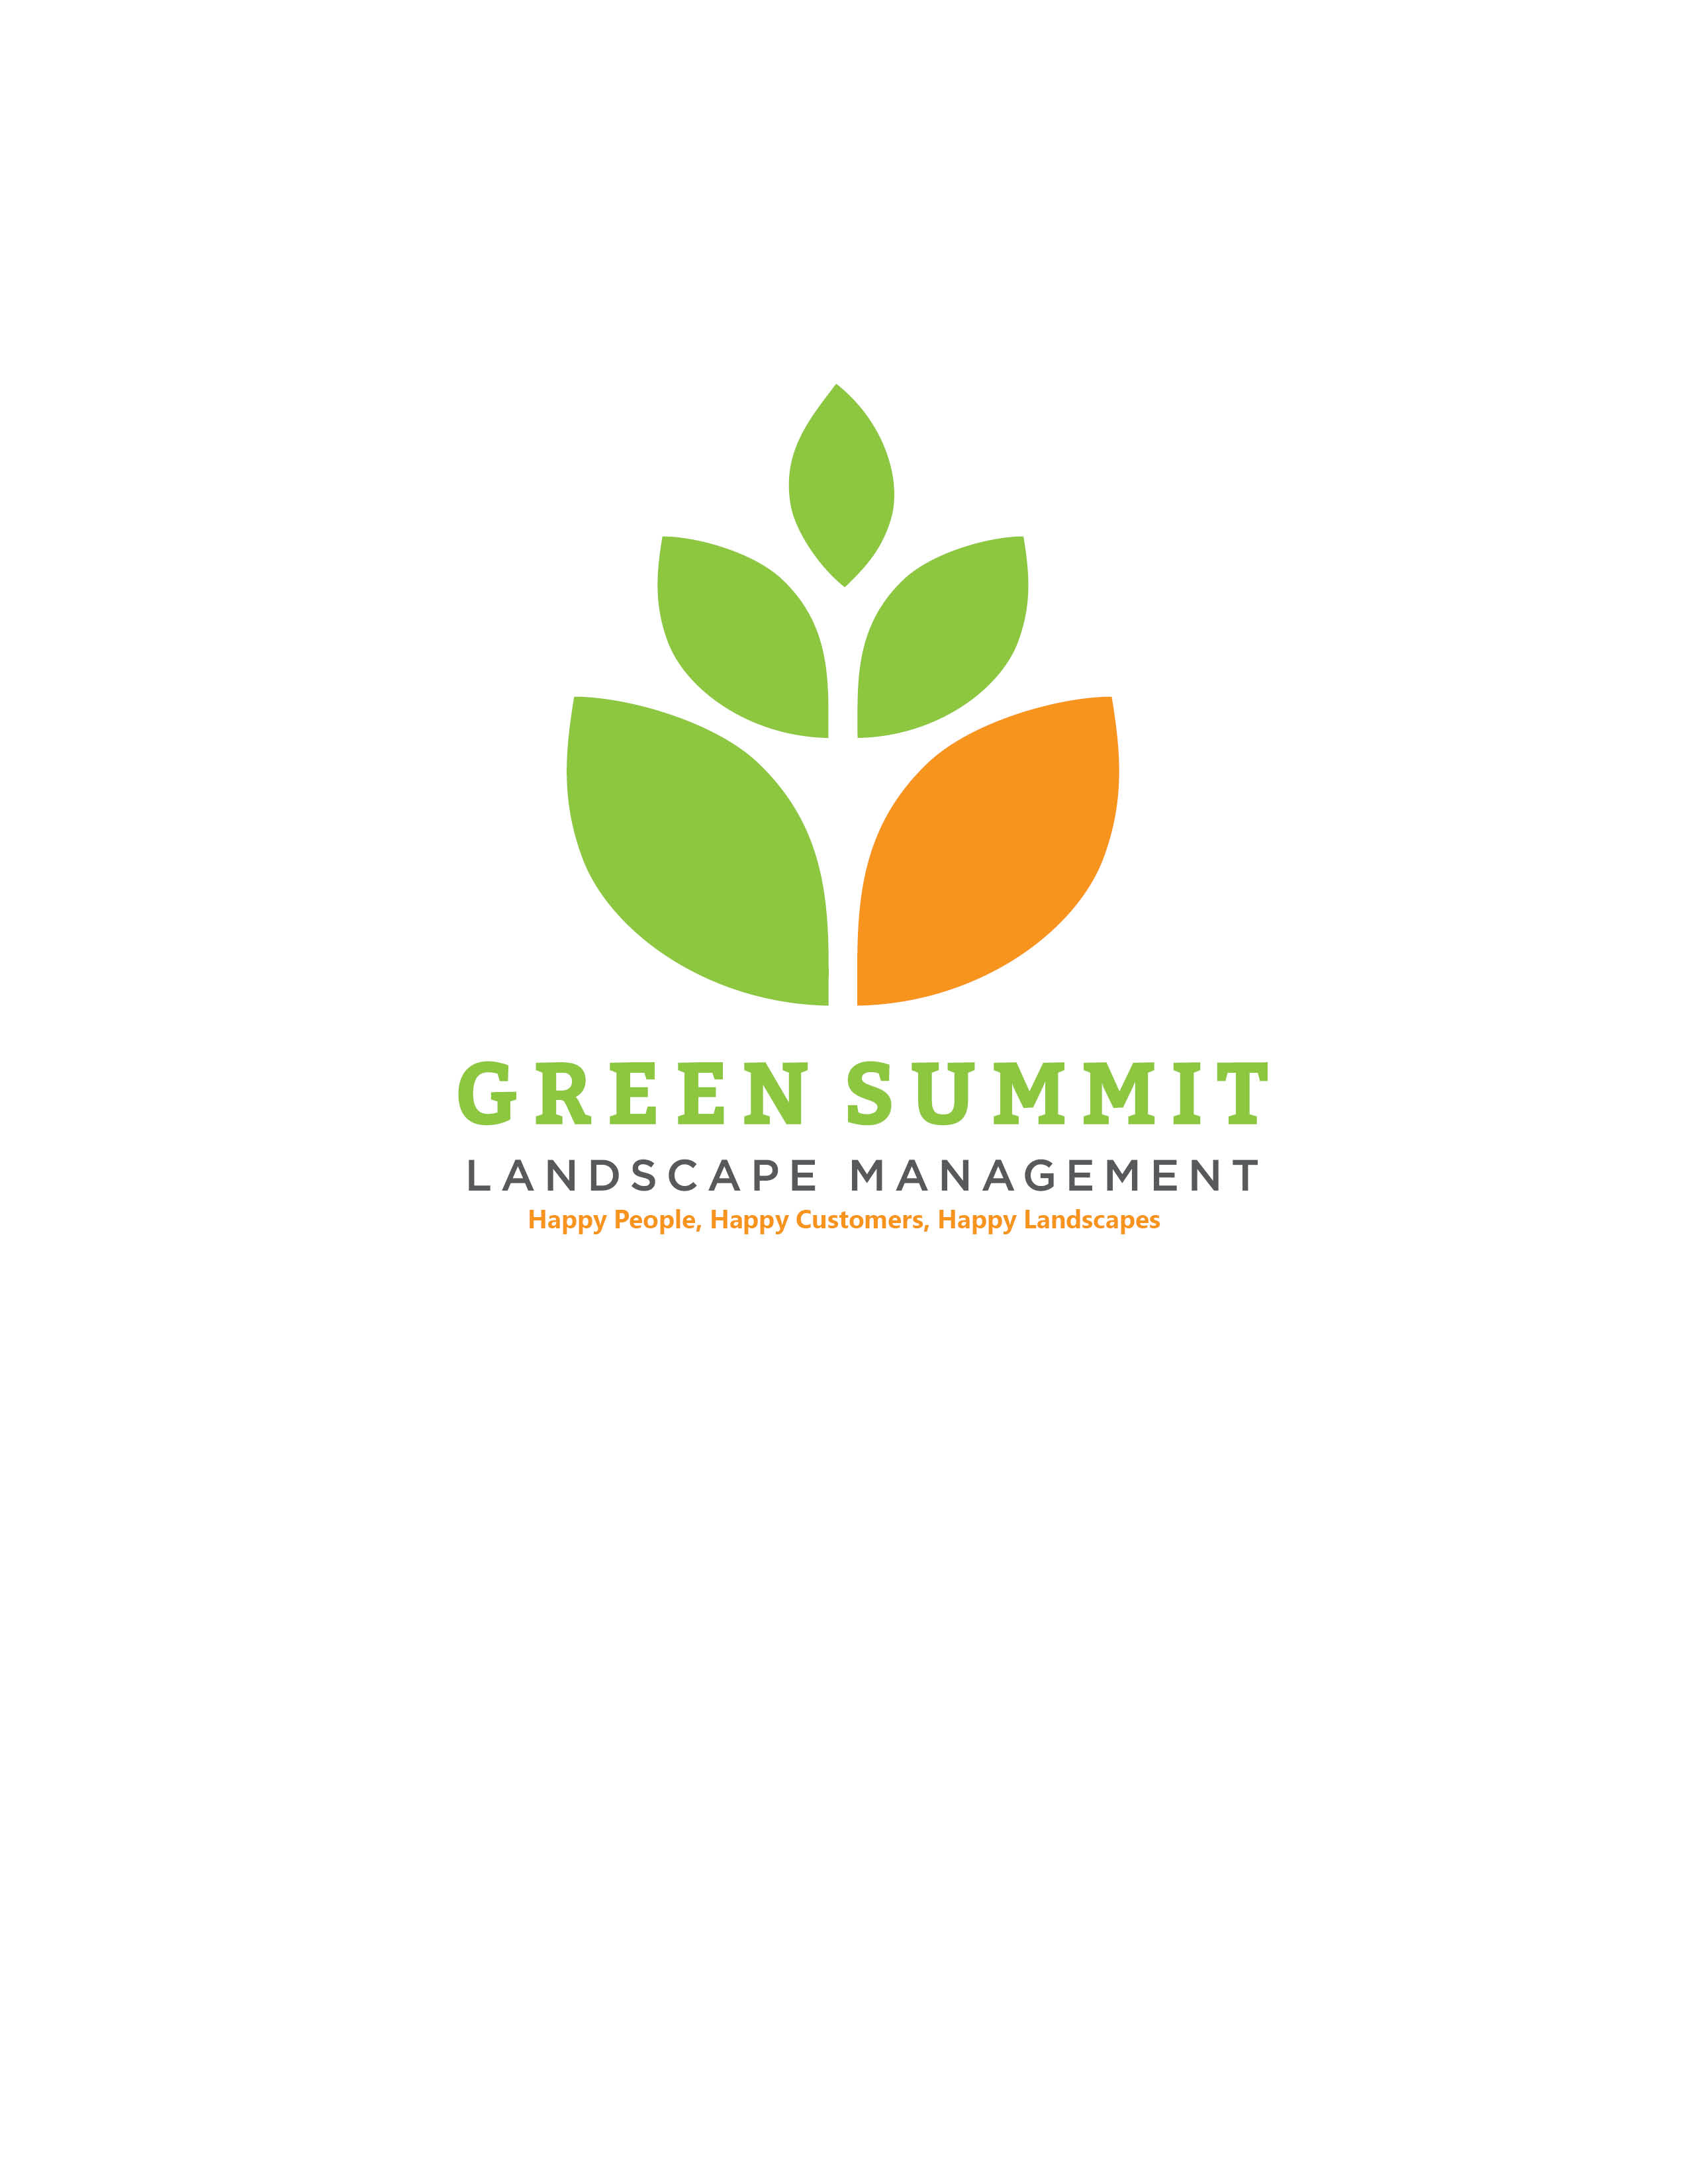 Green Summit Landscape Management, LLC